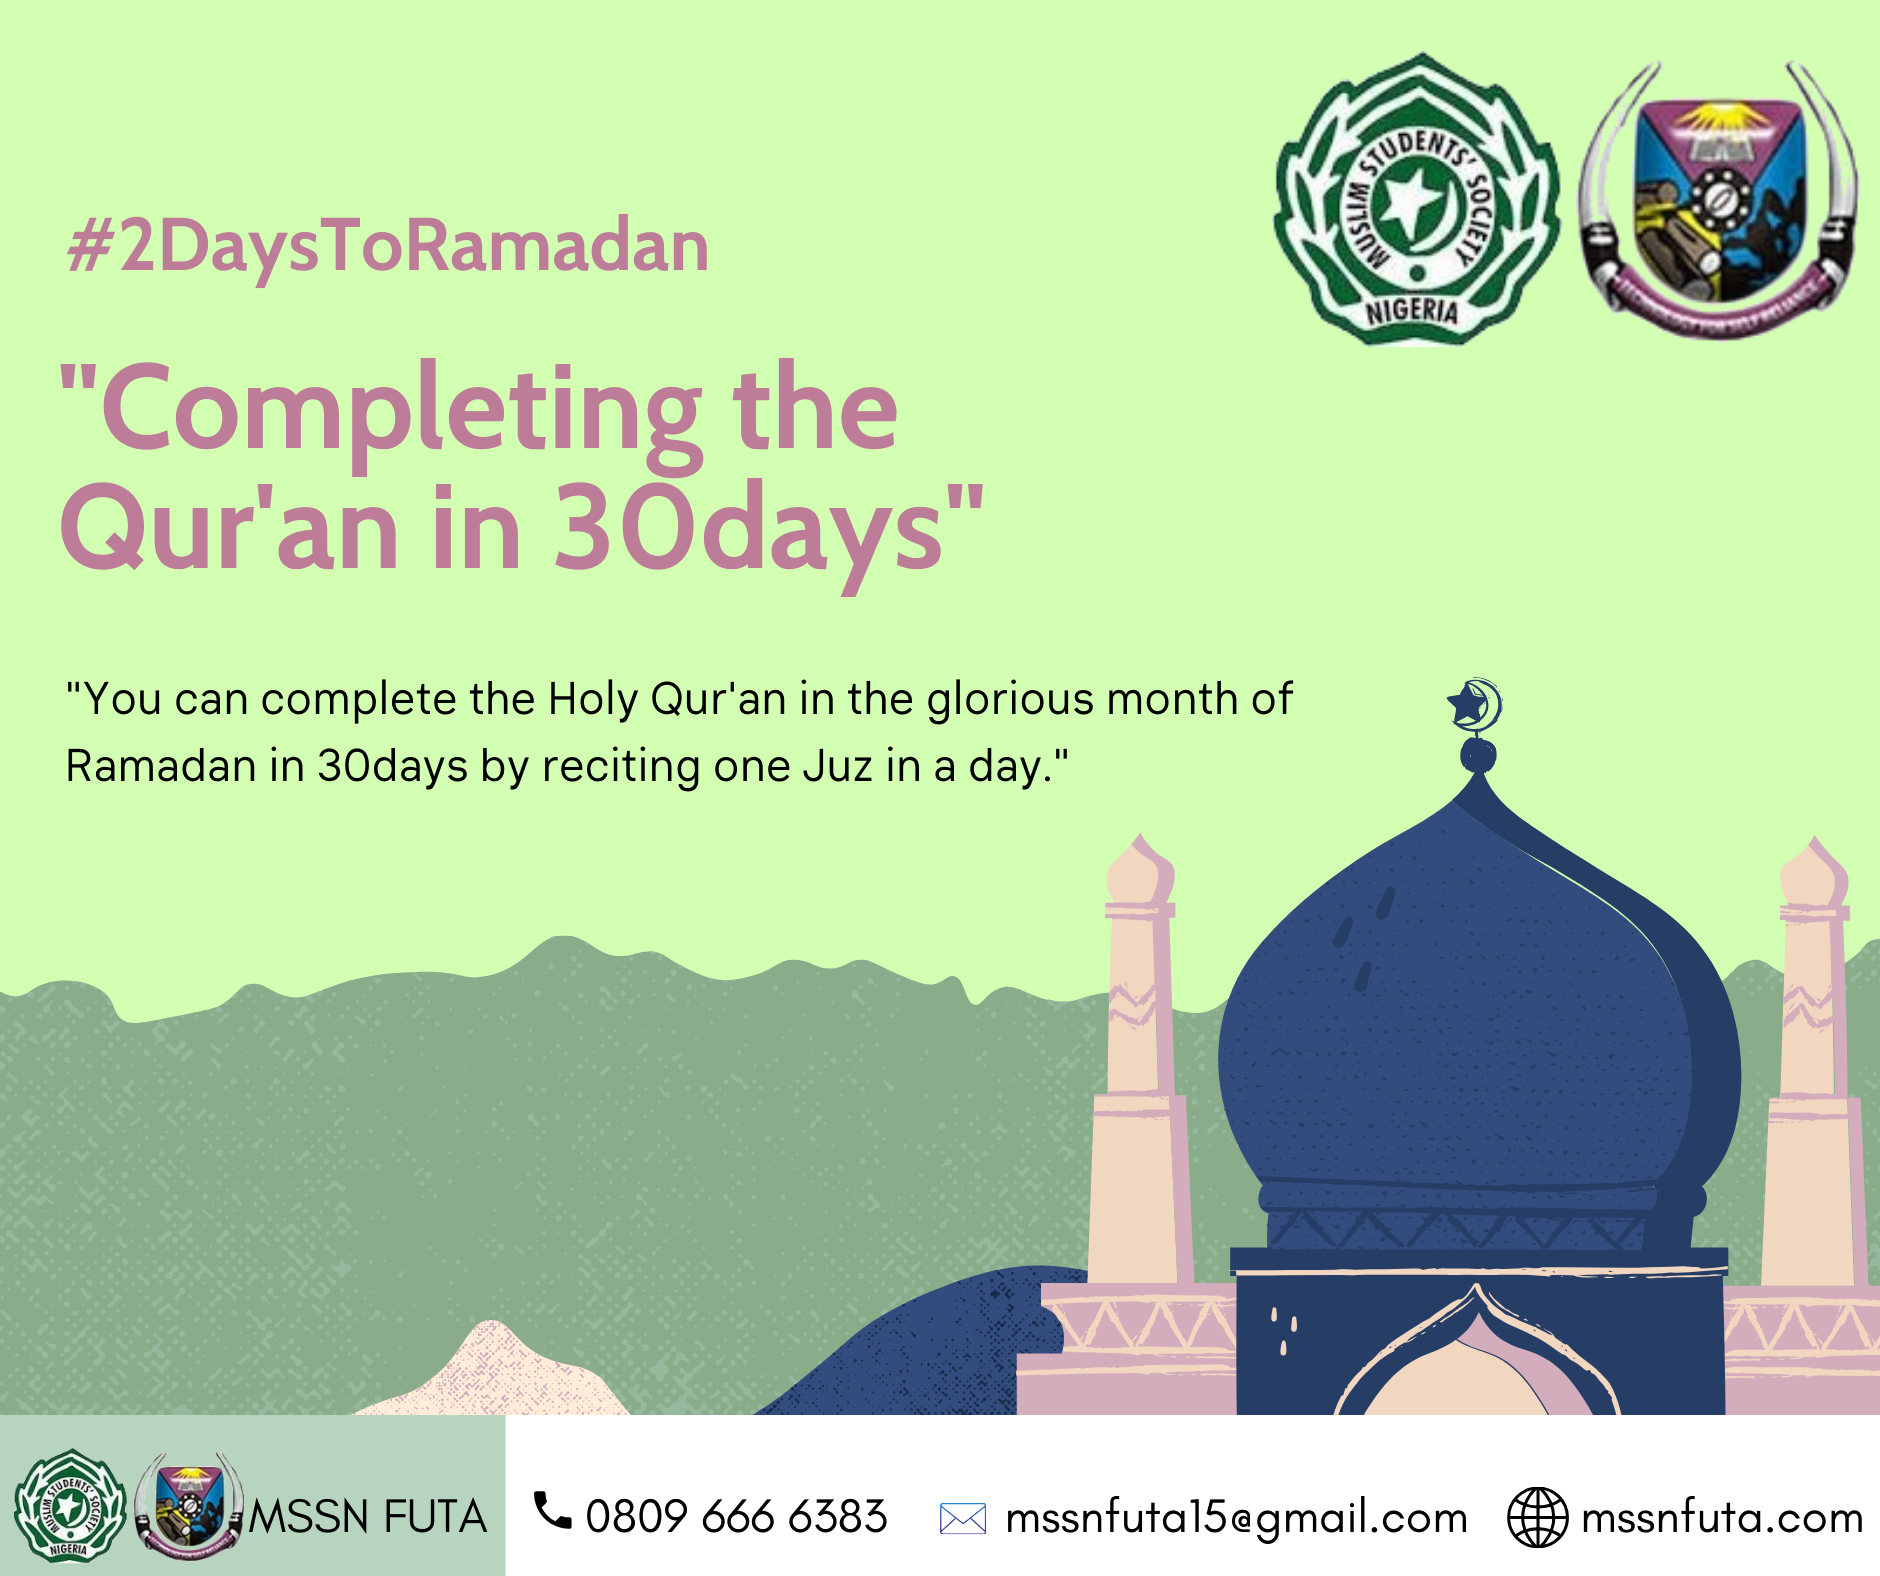 How to complete the Holy Qur'an in the glorious month of Ramadan in 30days